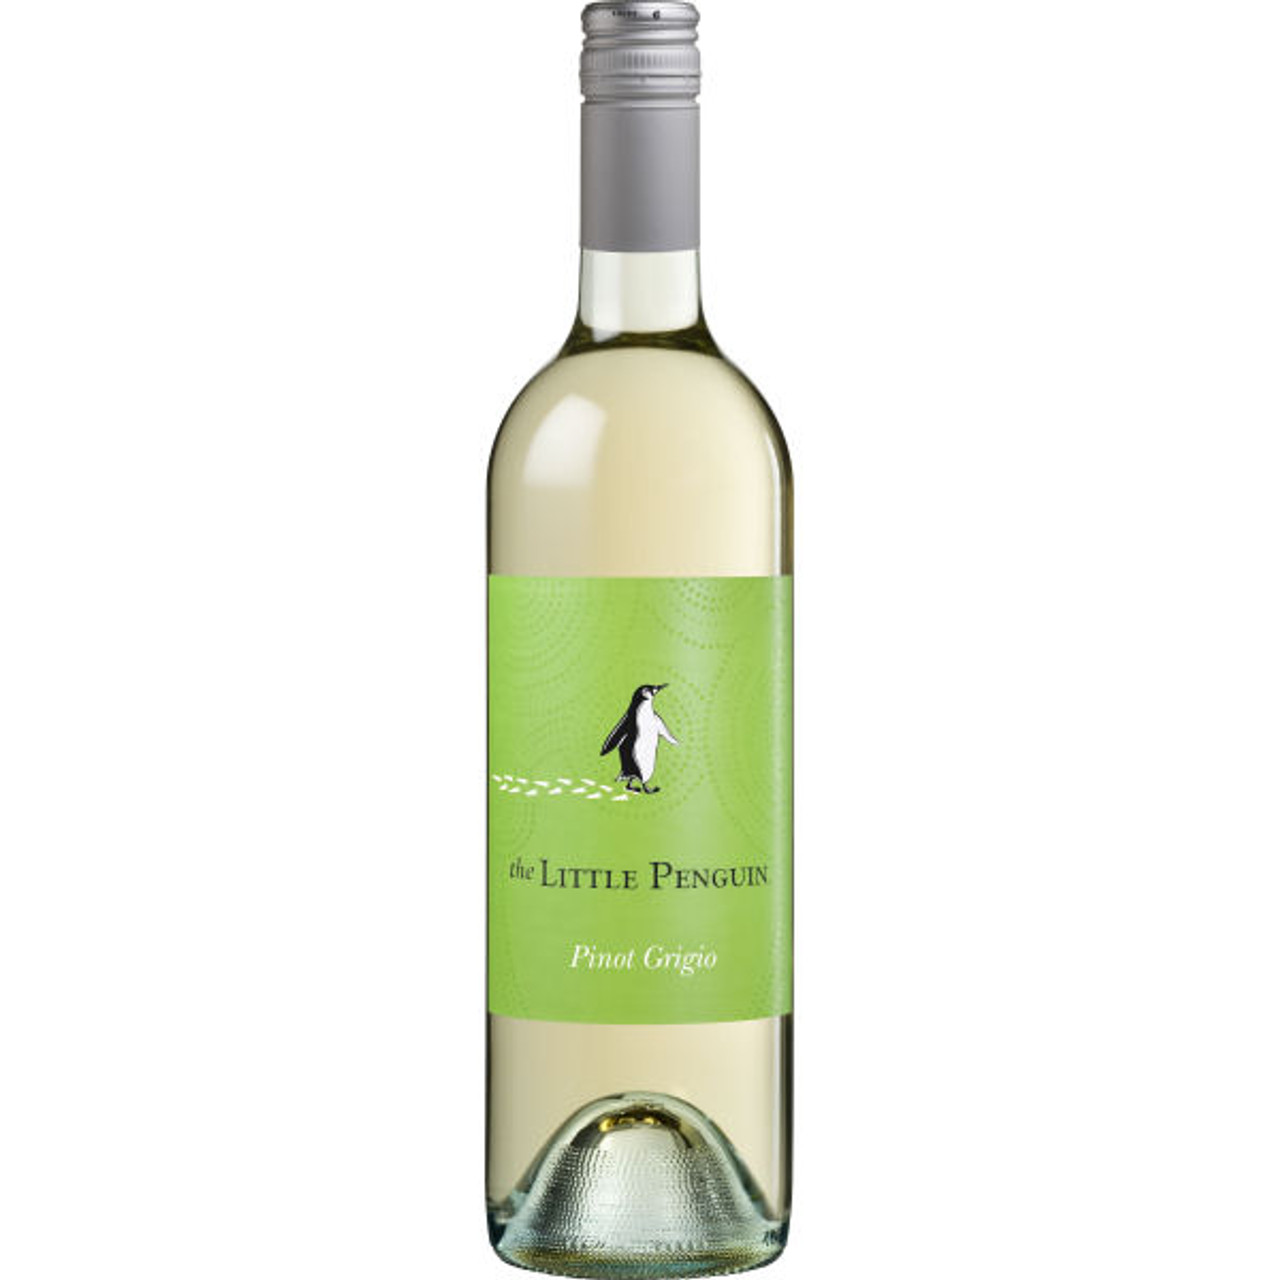 The Little Penguin South Eastern Australia Pinot Grigio